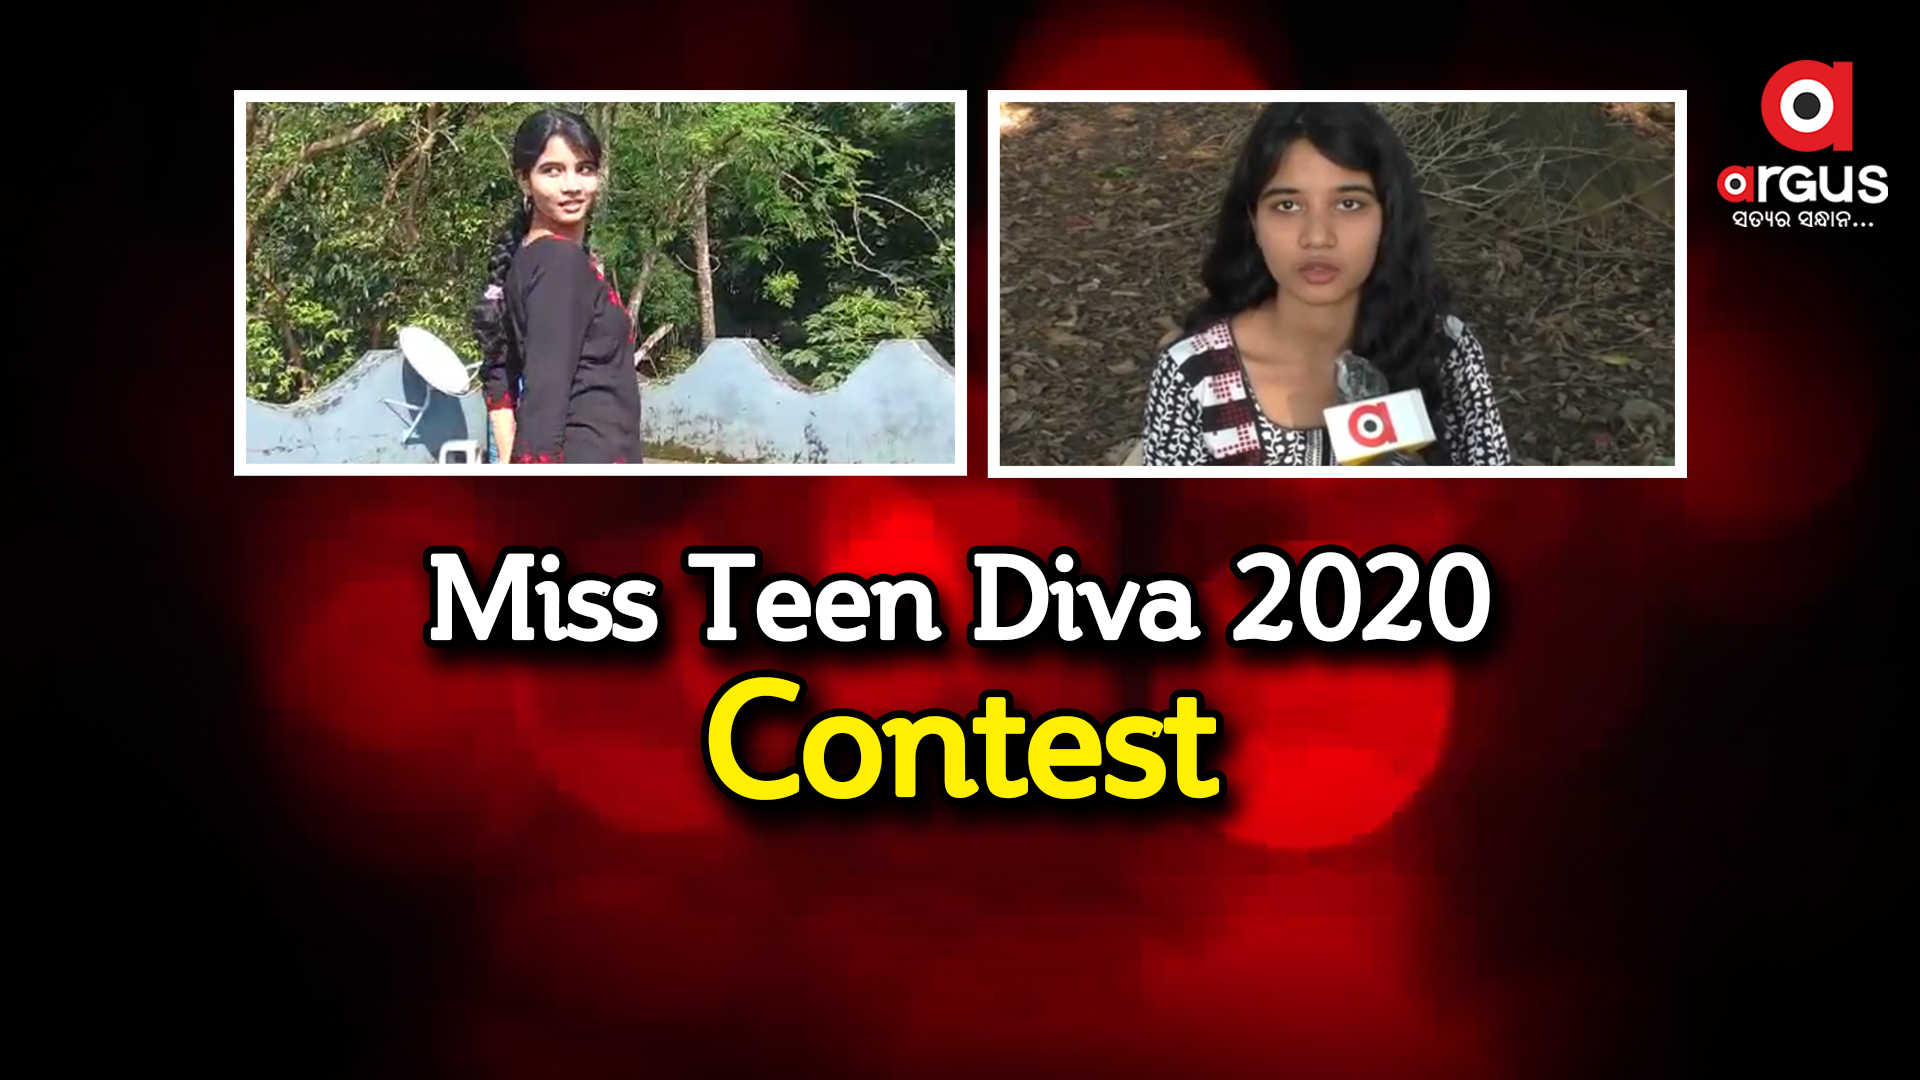 Kandhamal's Melisa qualifies for Miss Teen Diva Contest, financial crunch stands as major barrier